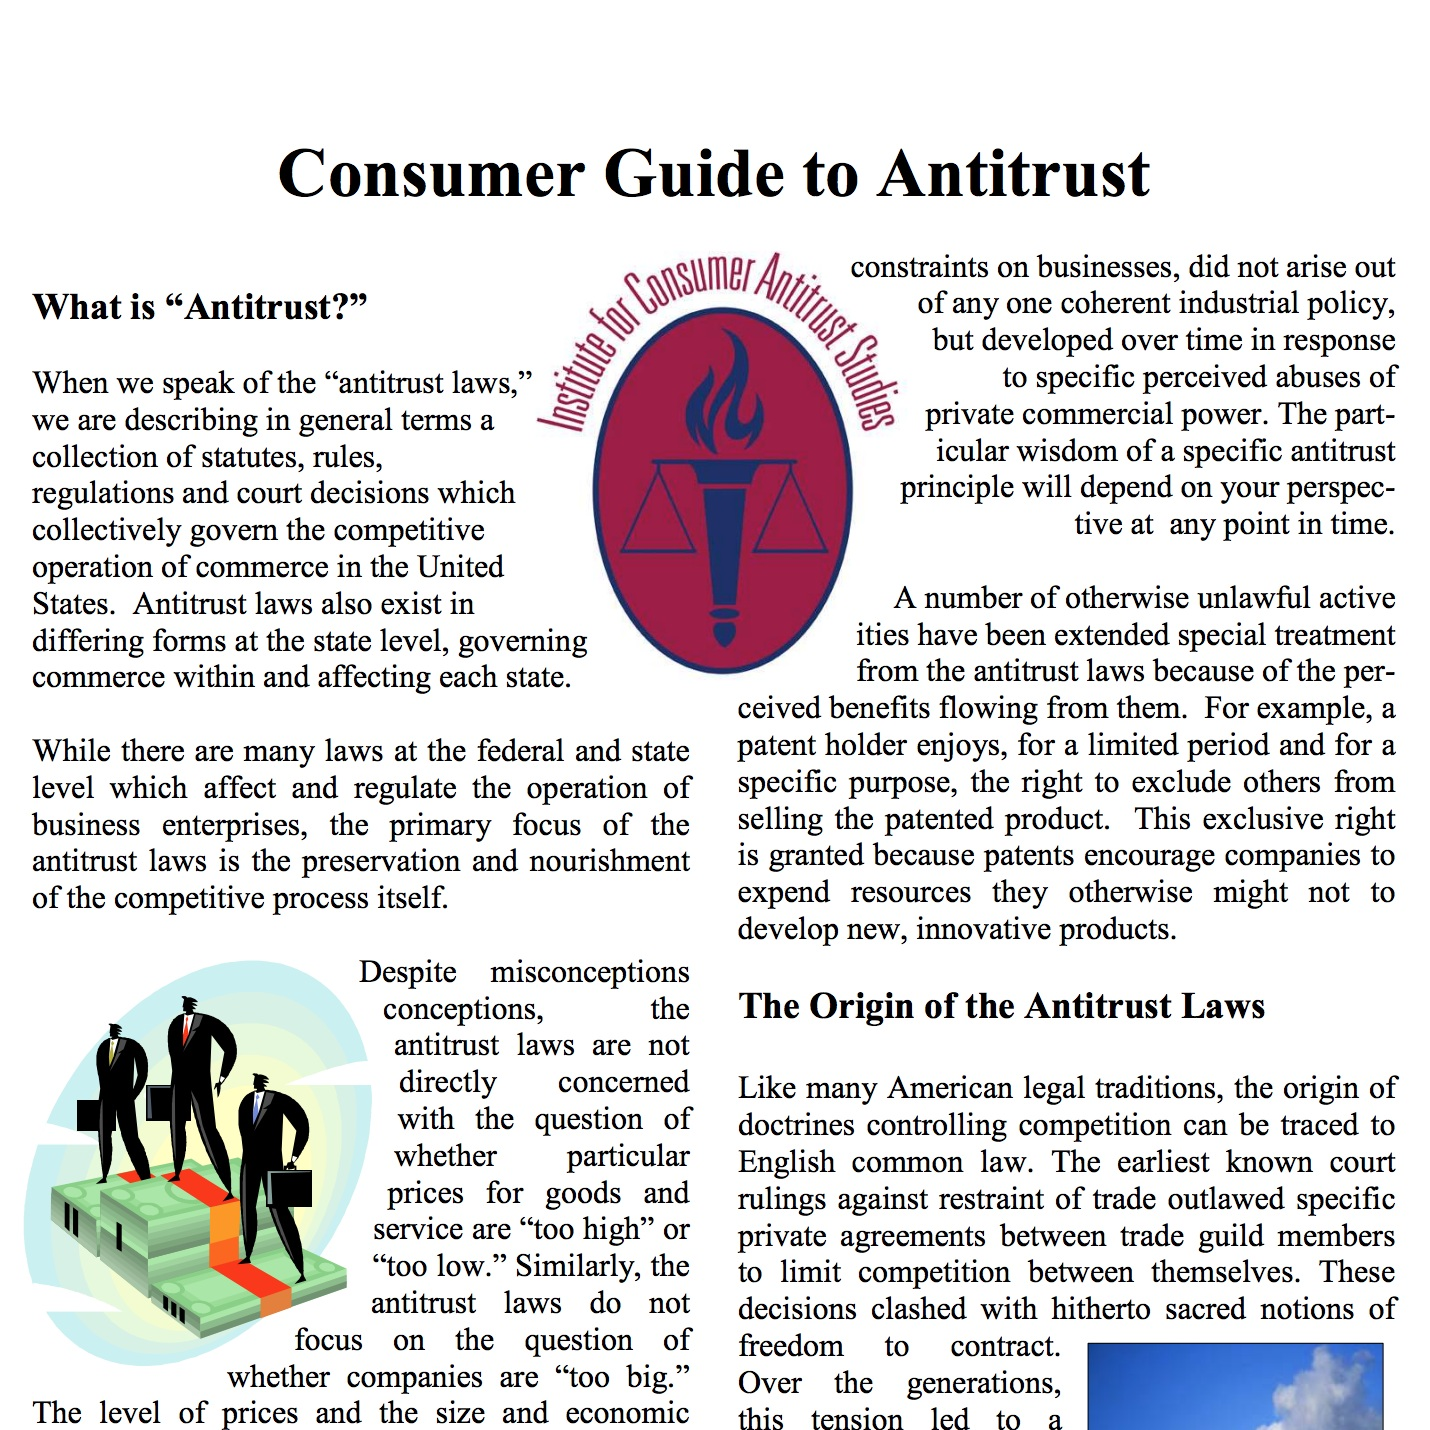 Consumer Guide to Antitrust - LOYOLA UNIVERSITY CHICAGO